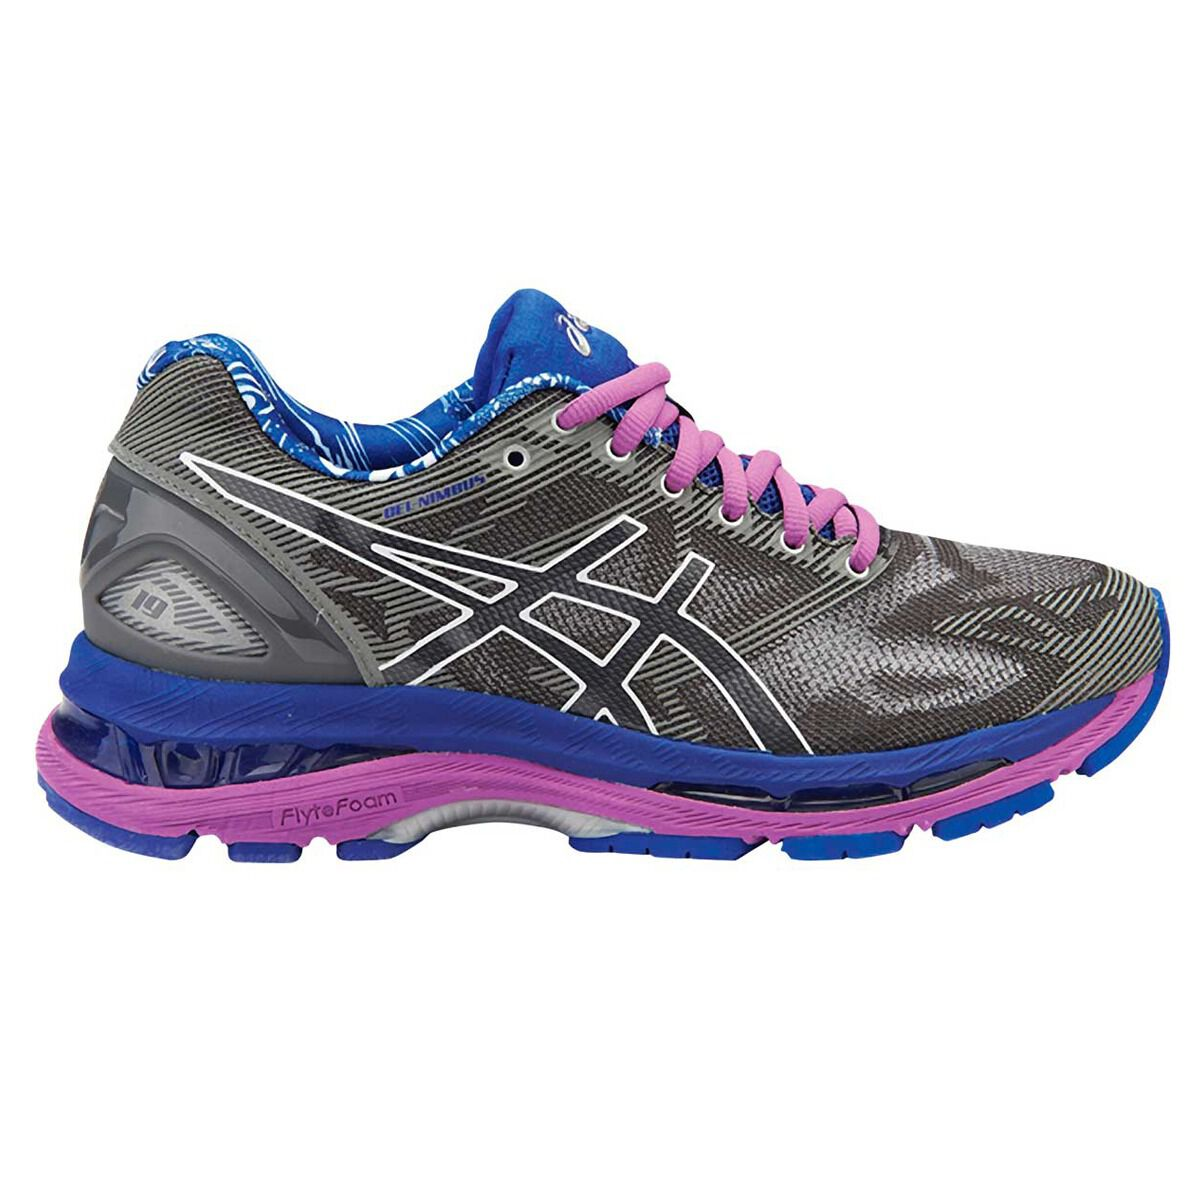 Running Purple Womens Nimbus Show Us Asics Shoes 19 Lite Gel Grey iOPkXuZwT